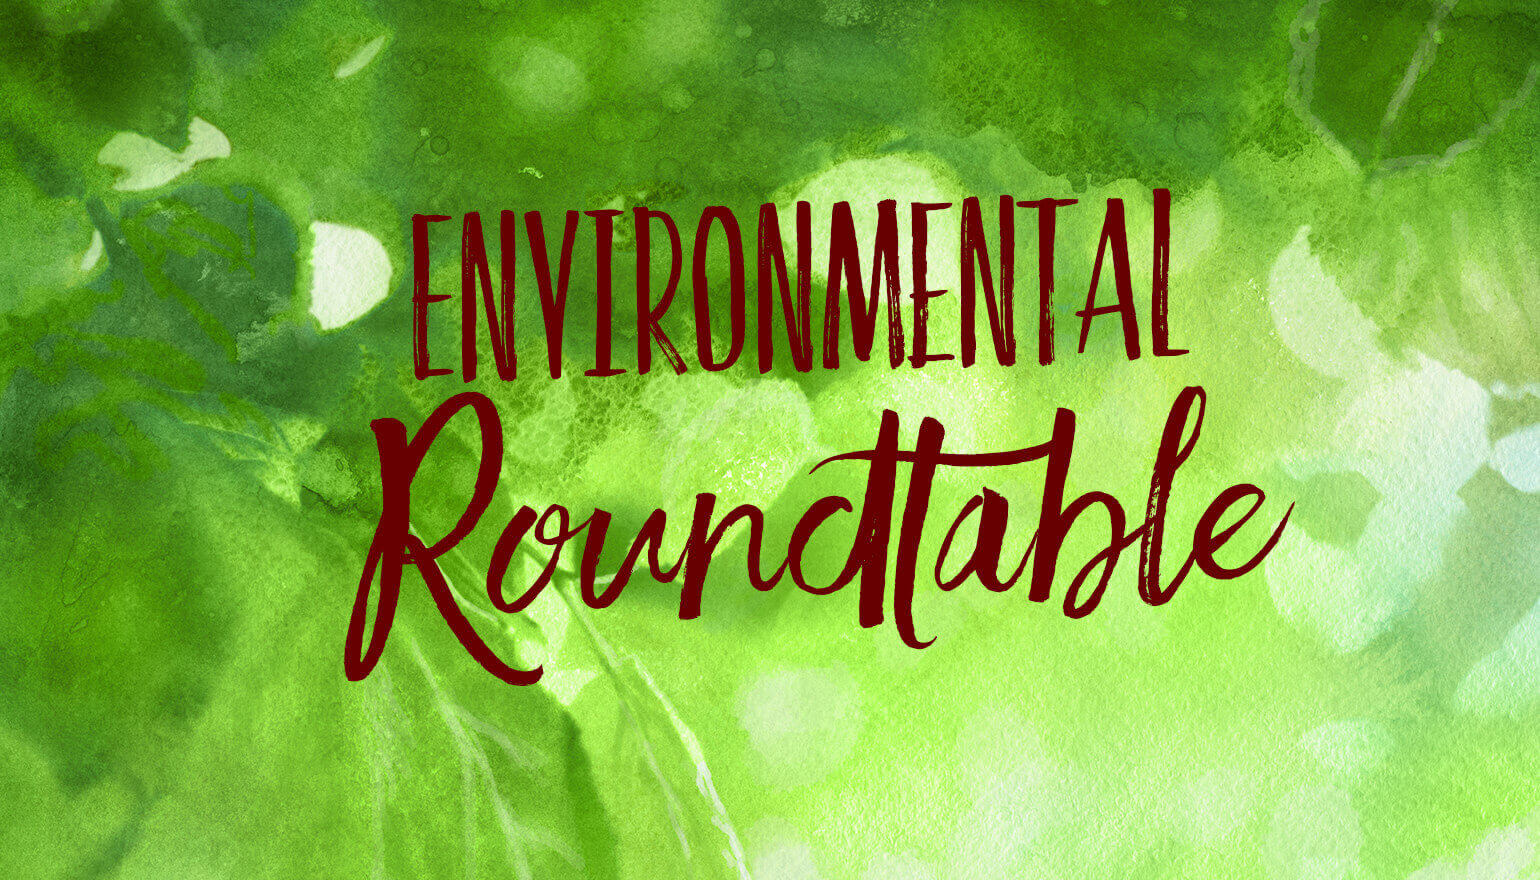 environmental round table graphic